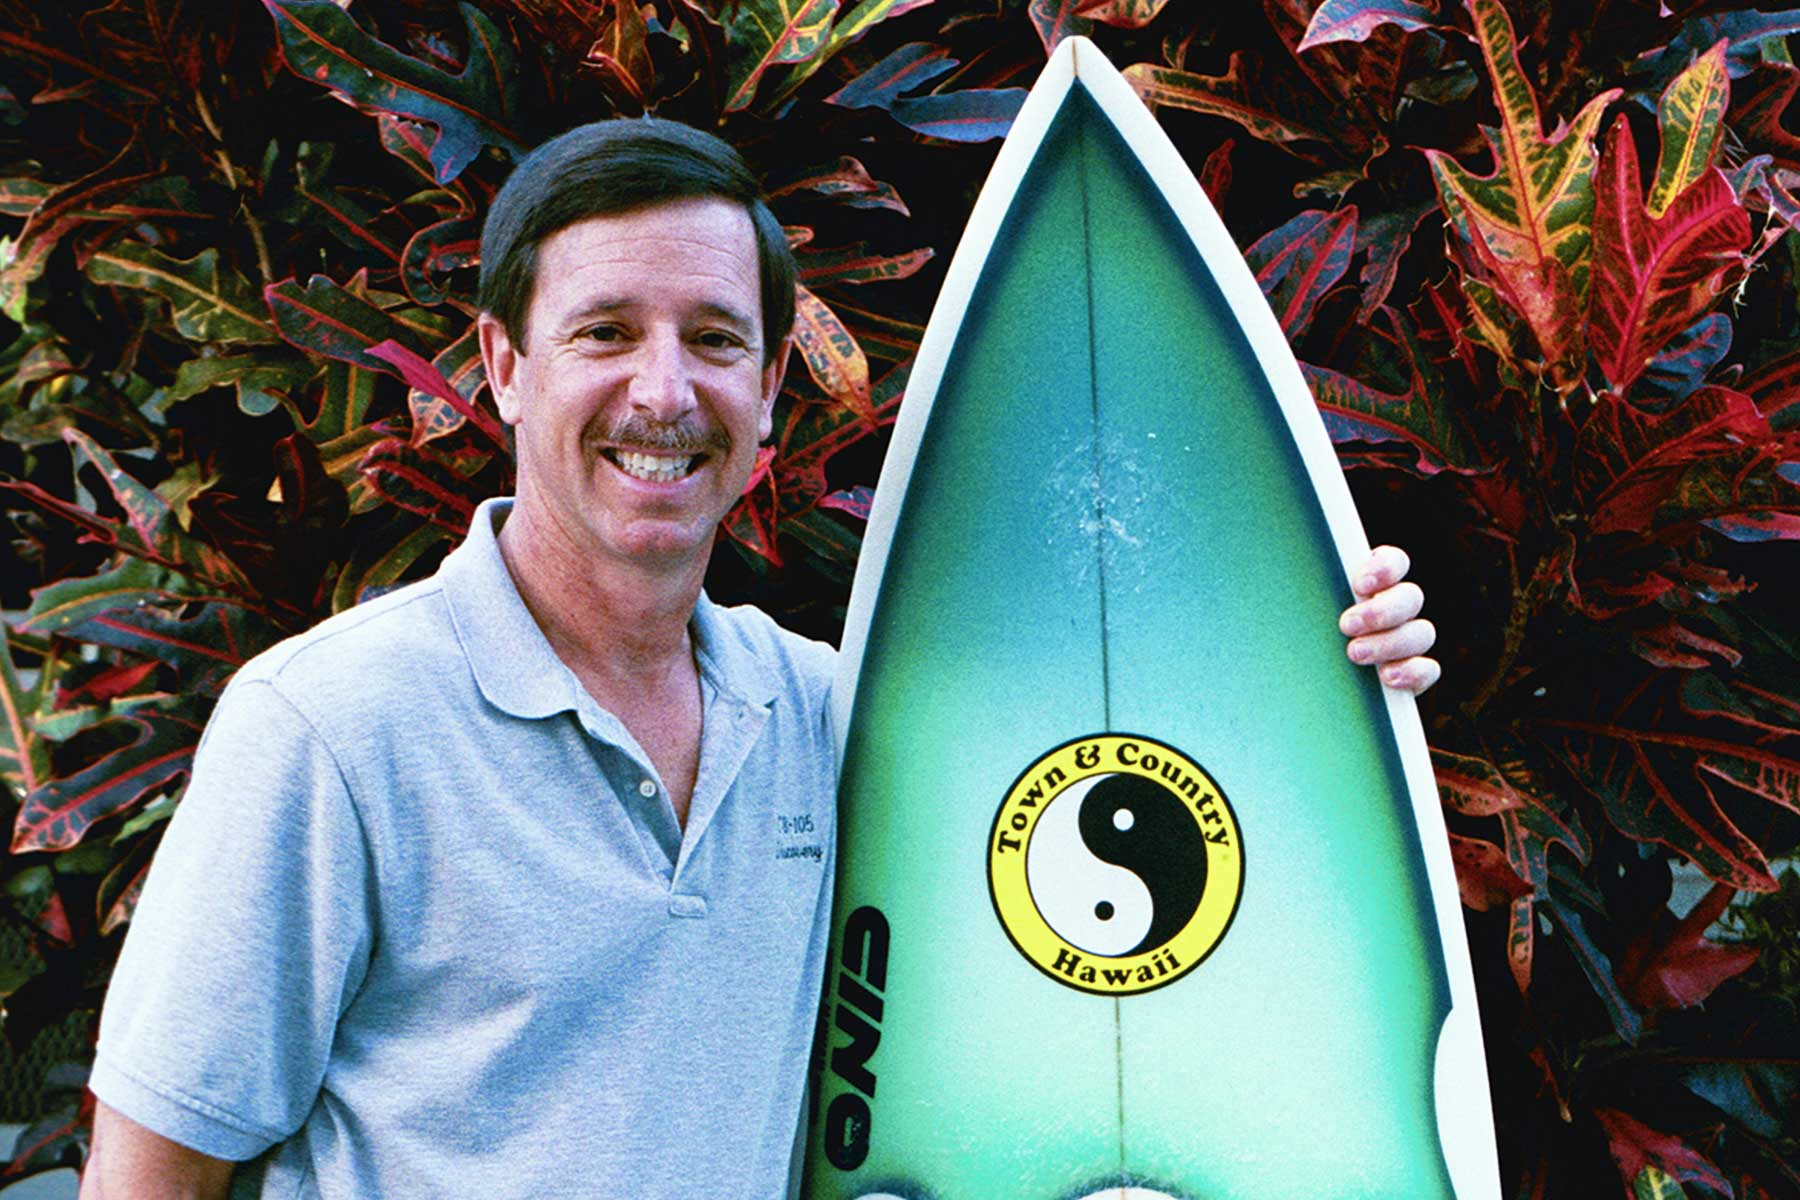 Astronaut Scott Horowitz Learning to Surf in Hawaii | Steven Andrew Martin | NASA | Surf Lessons Hawaii